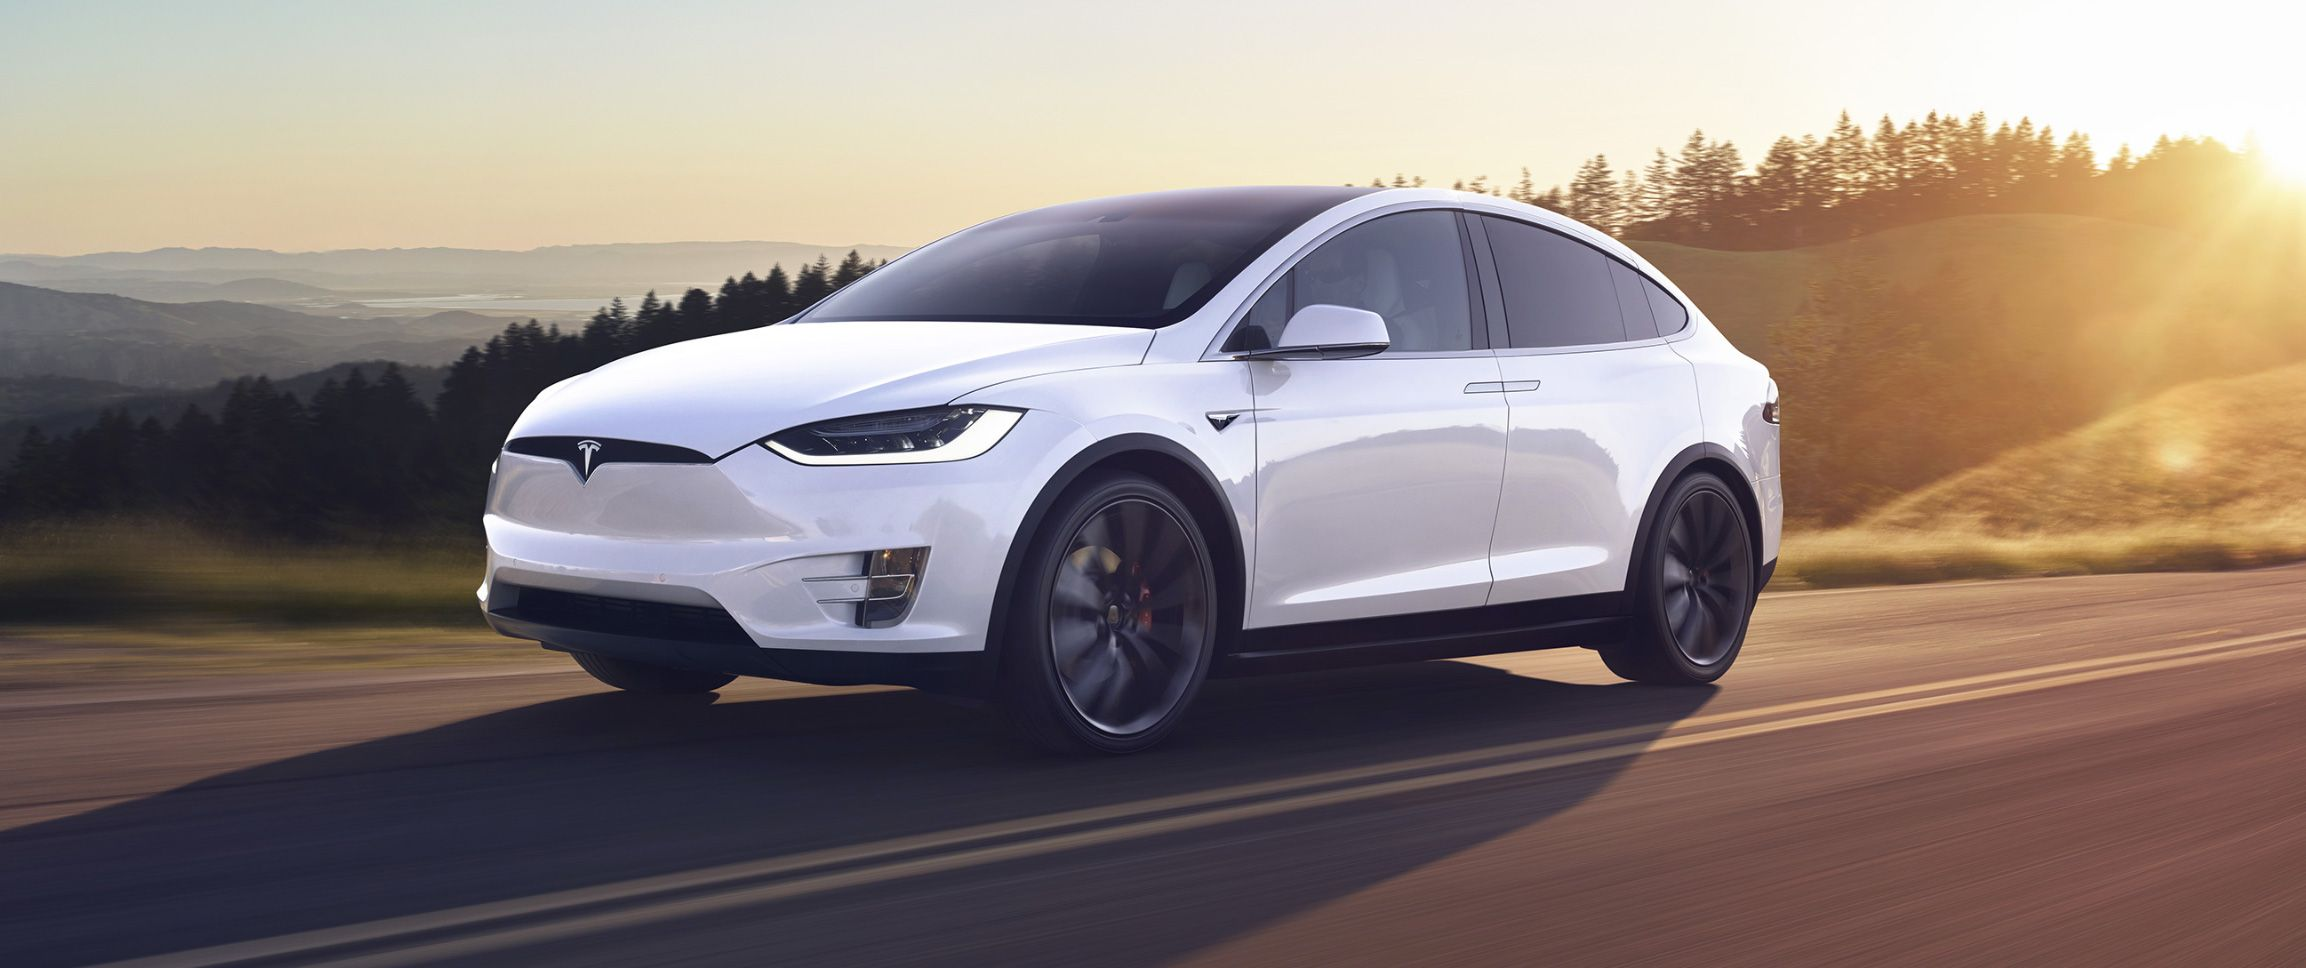 Model X: How Much Tesla's Most Expensive Car Costs & What Makes It Special